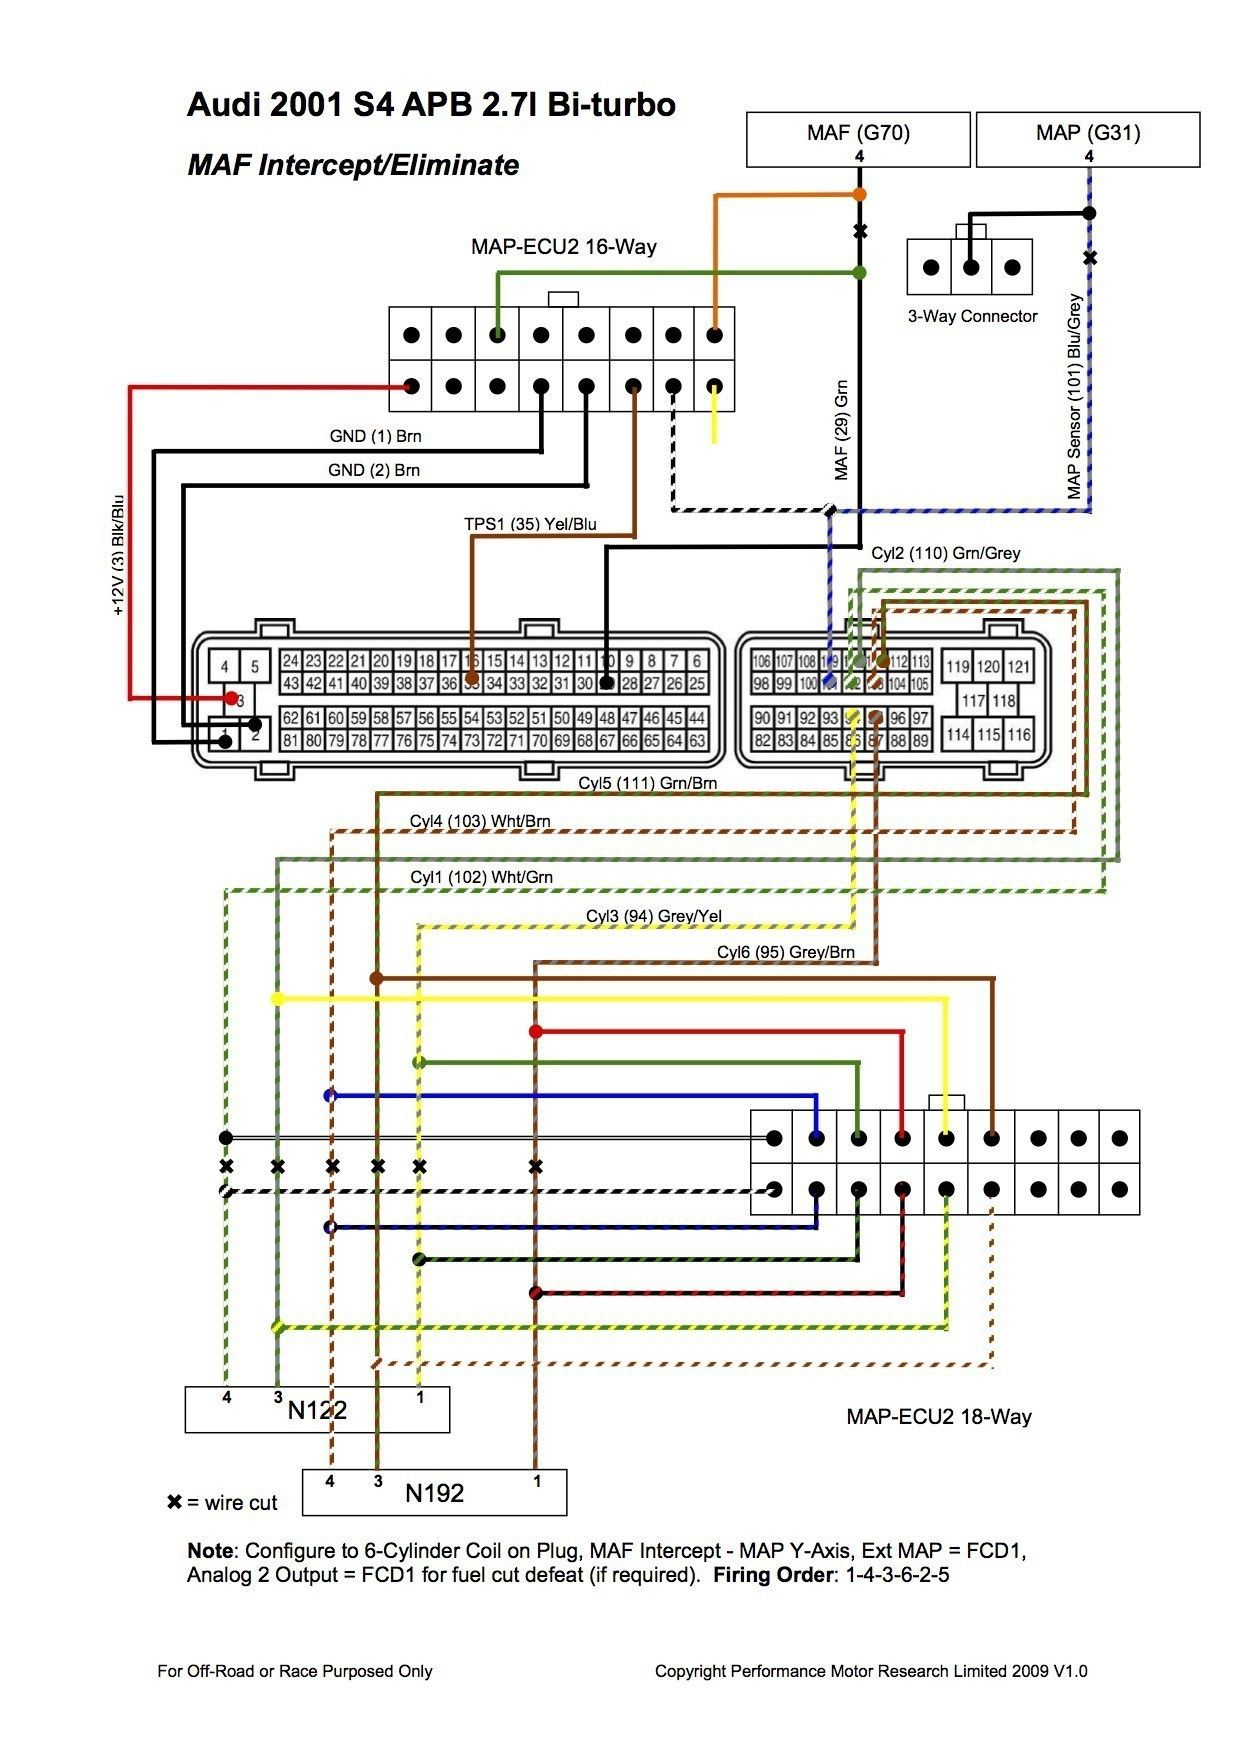 2014 Toyota Tundra Jbl Wiring Diagram - 2005 Nissan Altima Fuse Box  Location - hyundaiii.tukune.jeanjaures37.fr | 2014 Toyota Tundra Jbl Wiring Diagram |  | Wiring Diagram Resource